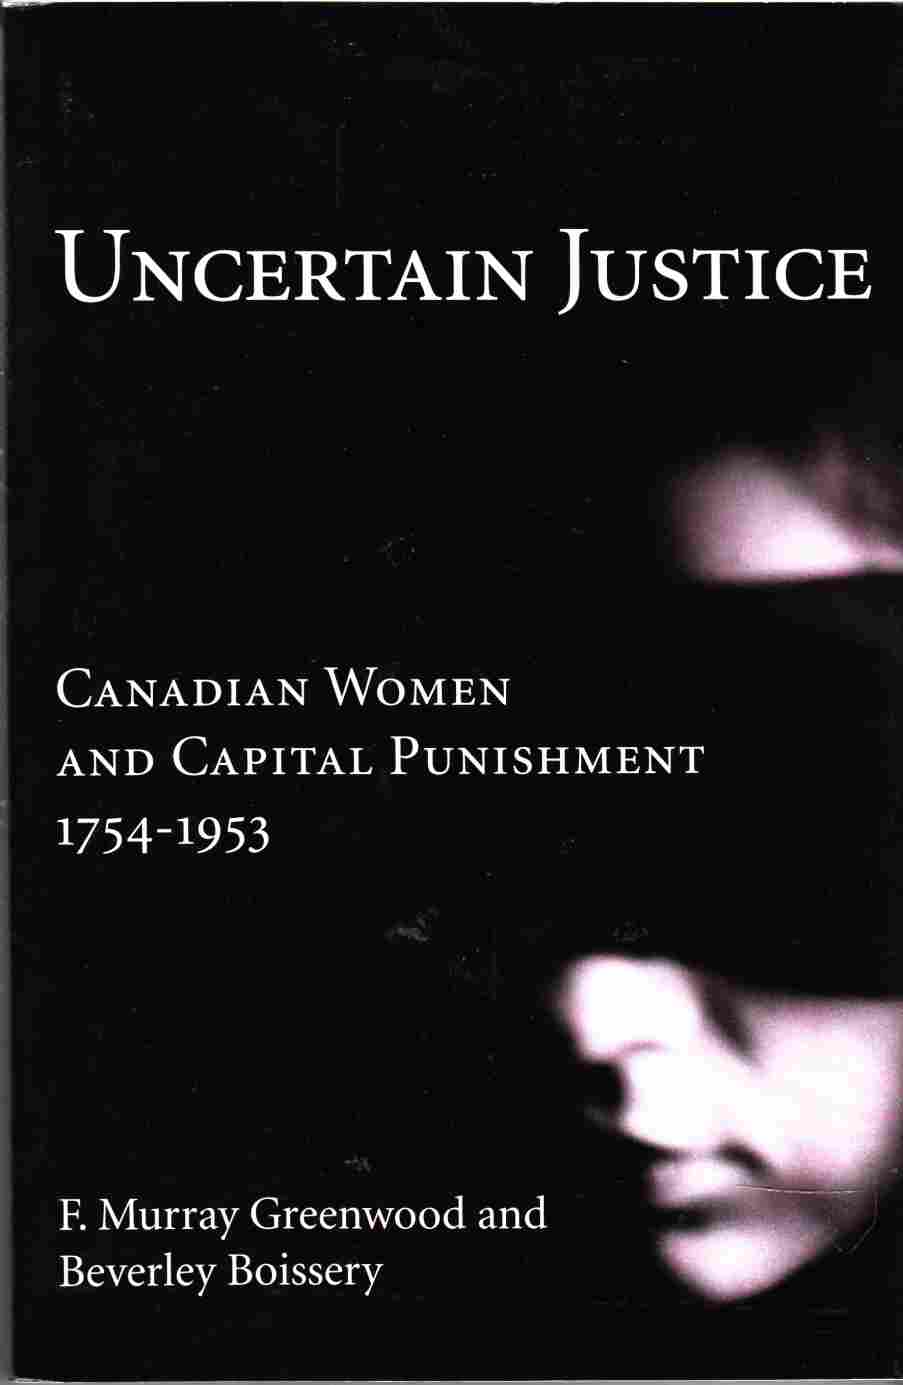 Image for Uncertain Justice Canadian Women and Capital Punishment 1754-1953